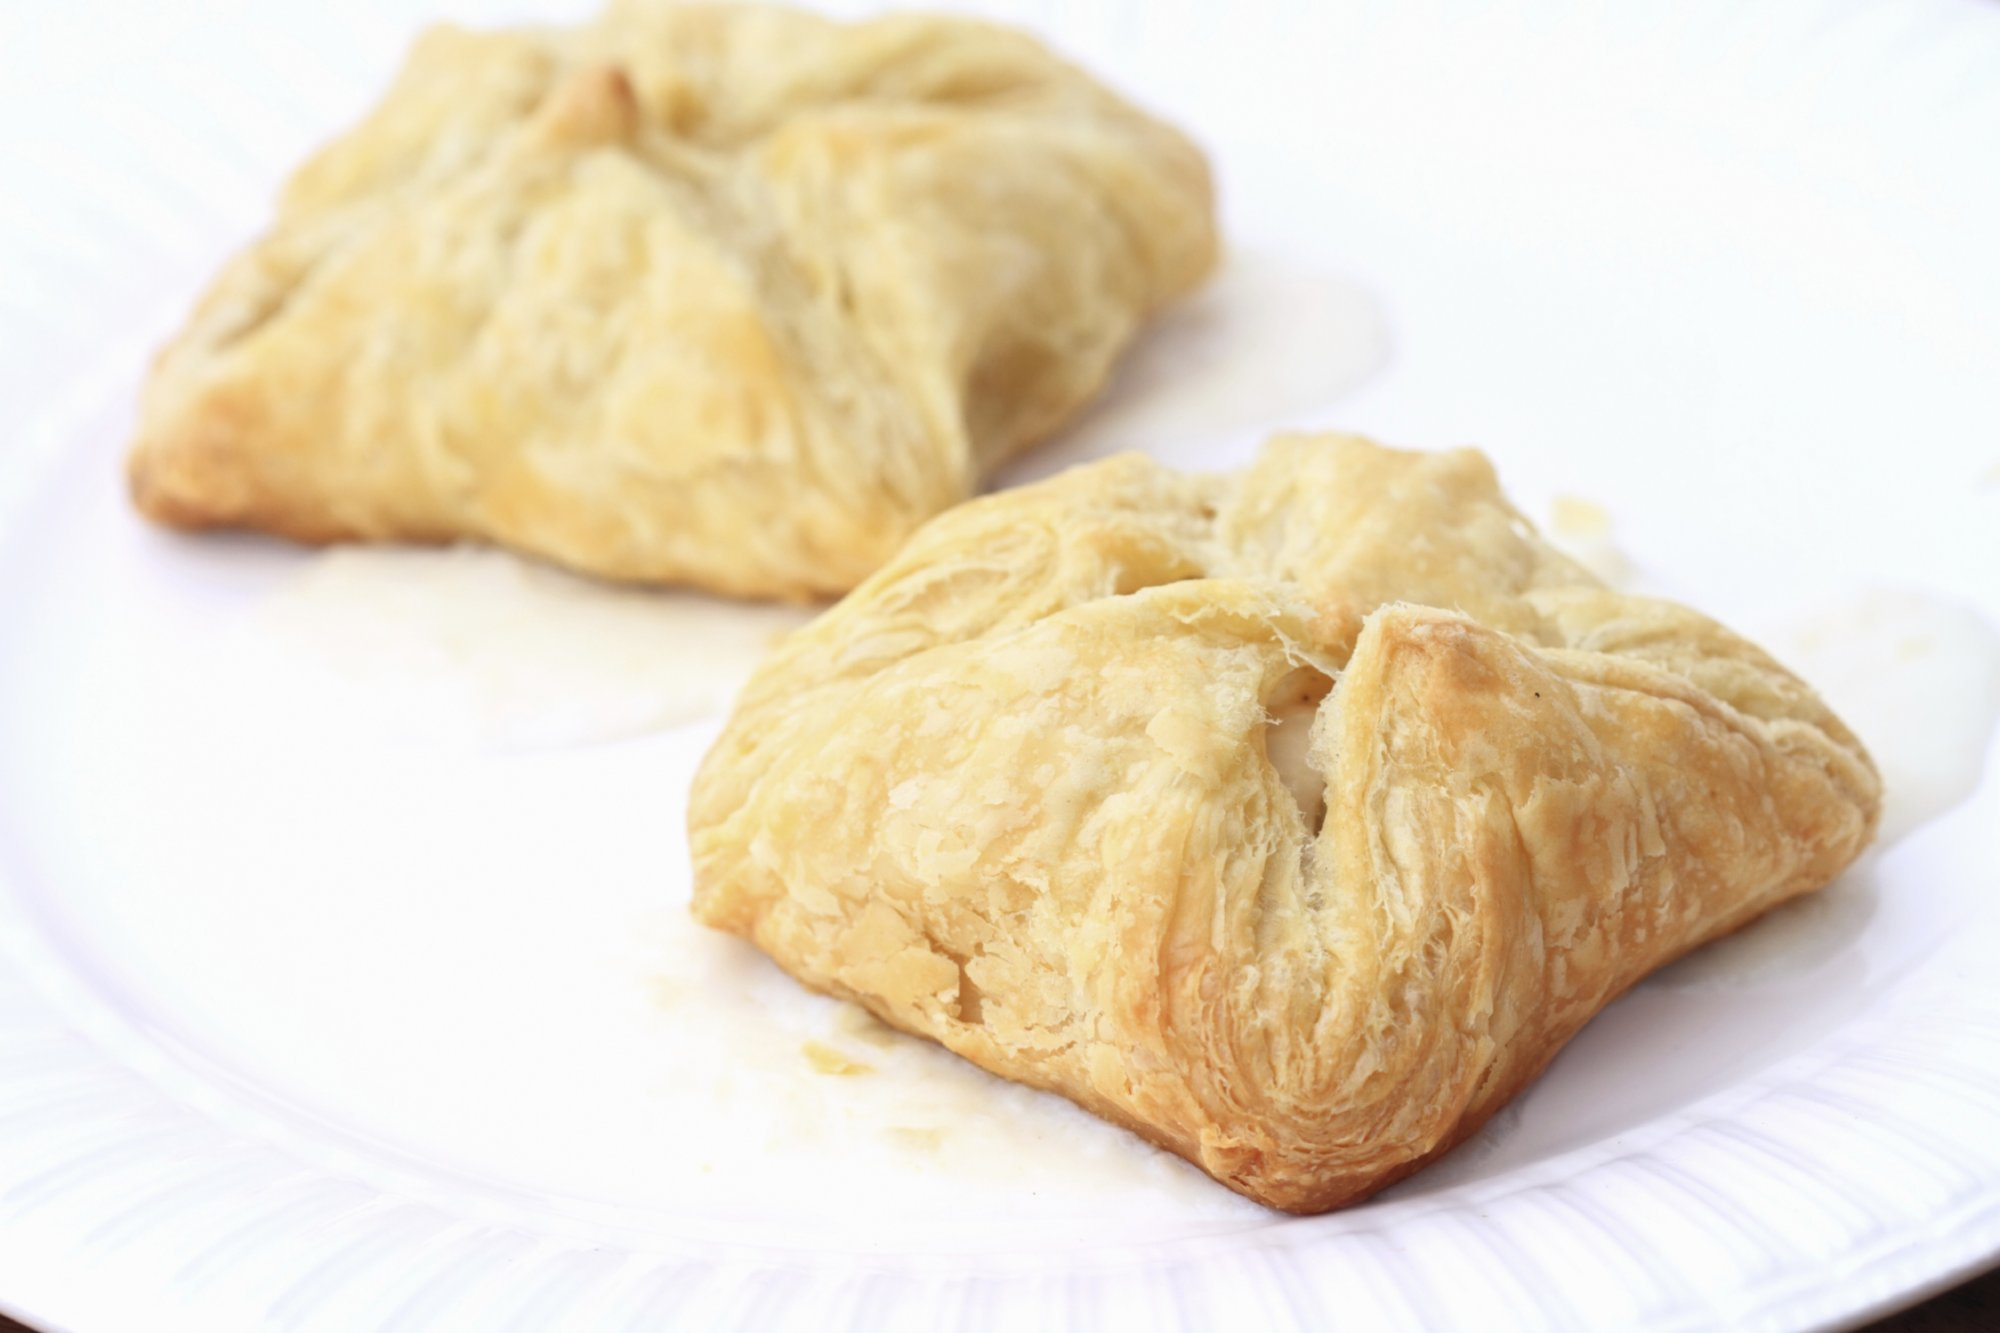 stuffed_puffed_pastries